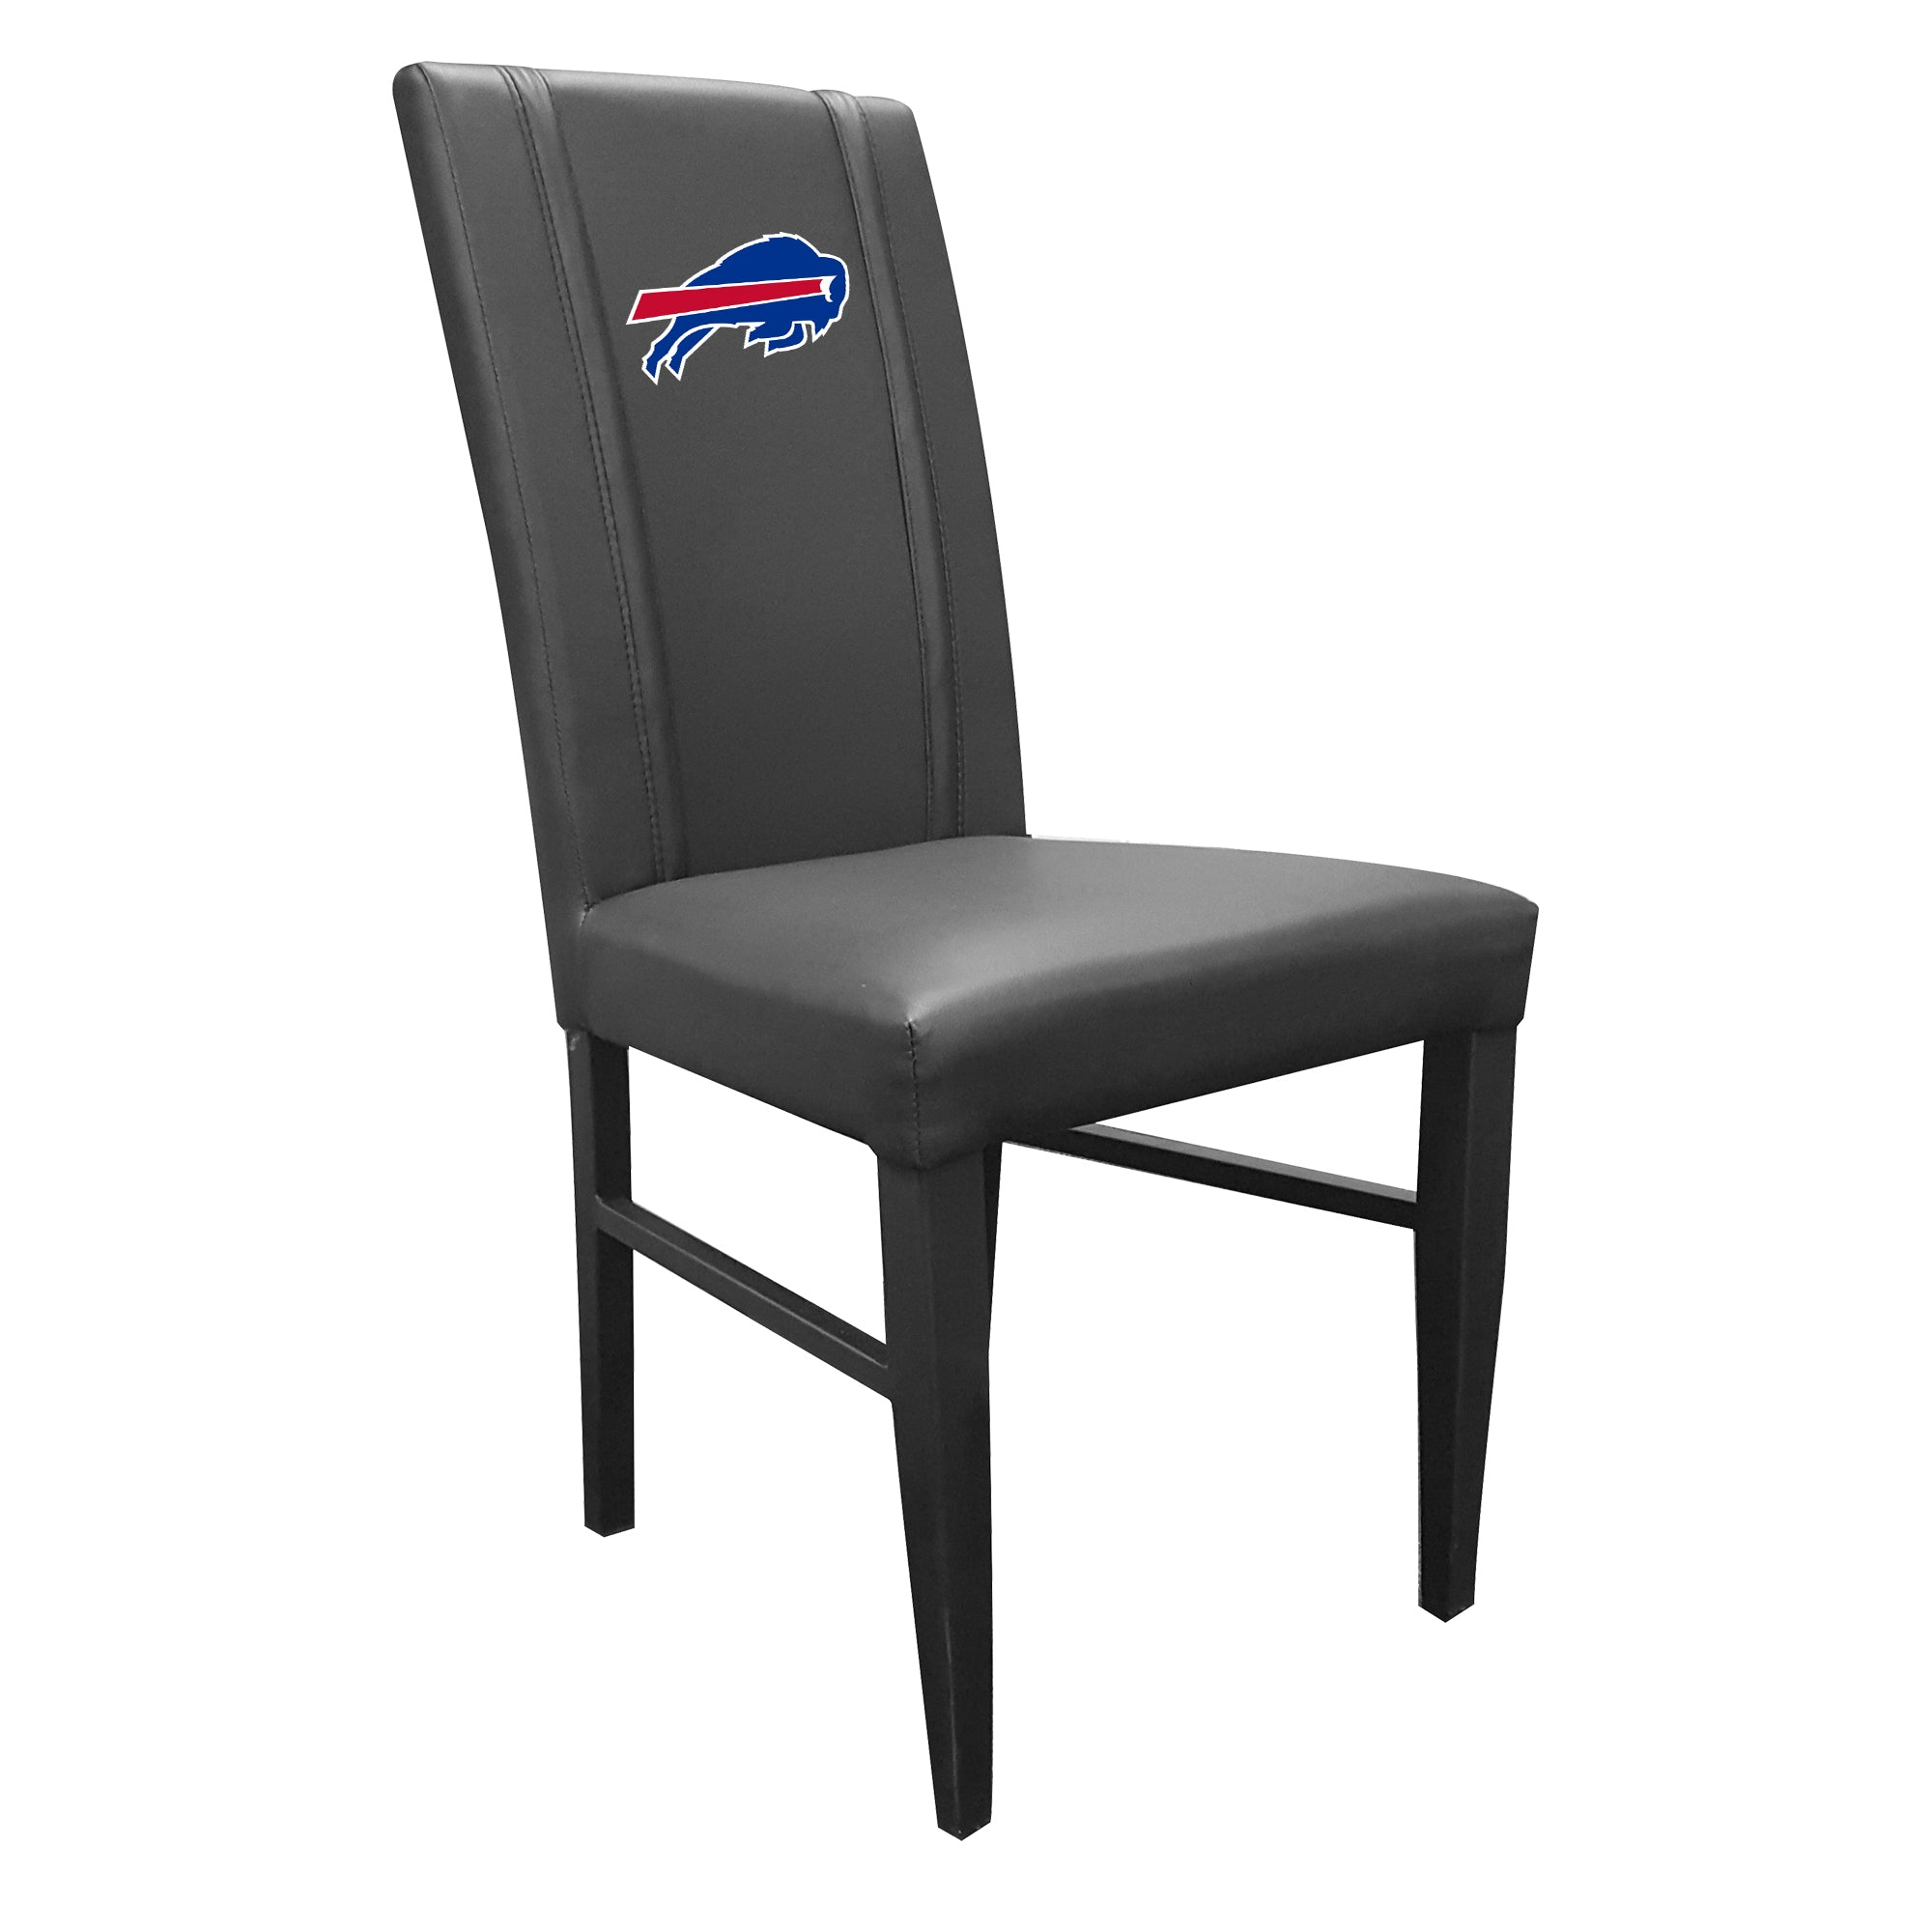 Side Chair 2000 with  Buffalo Bills Primary Logo